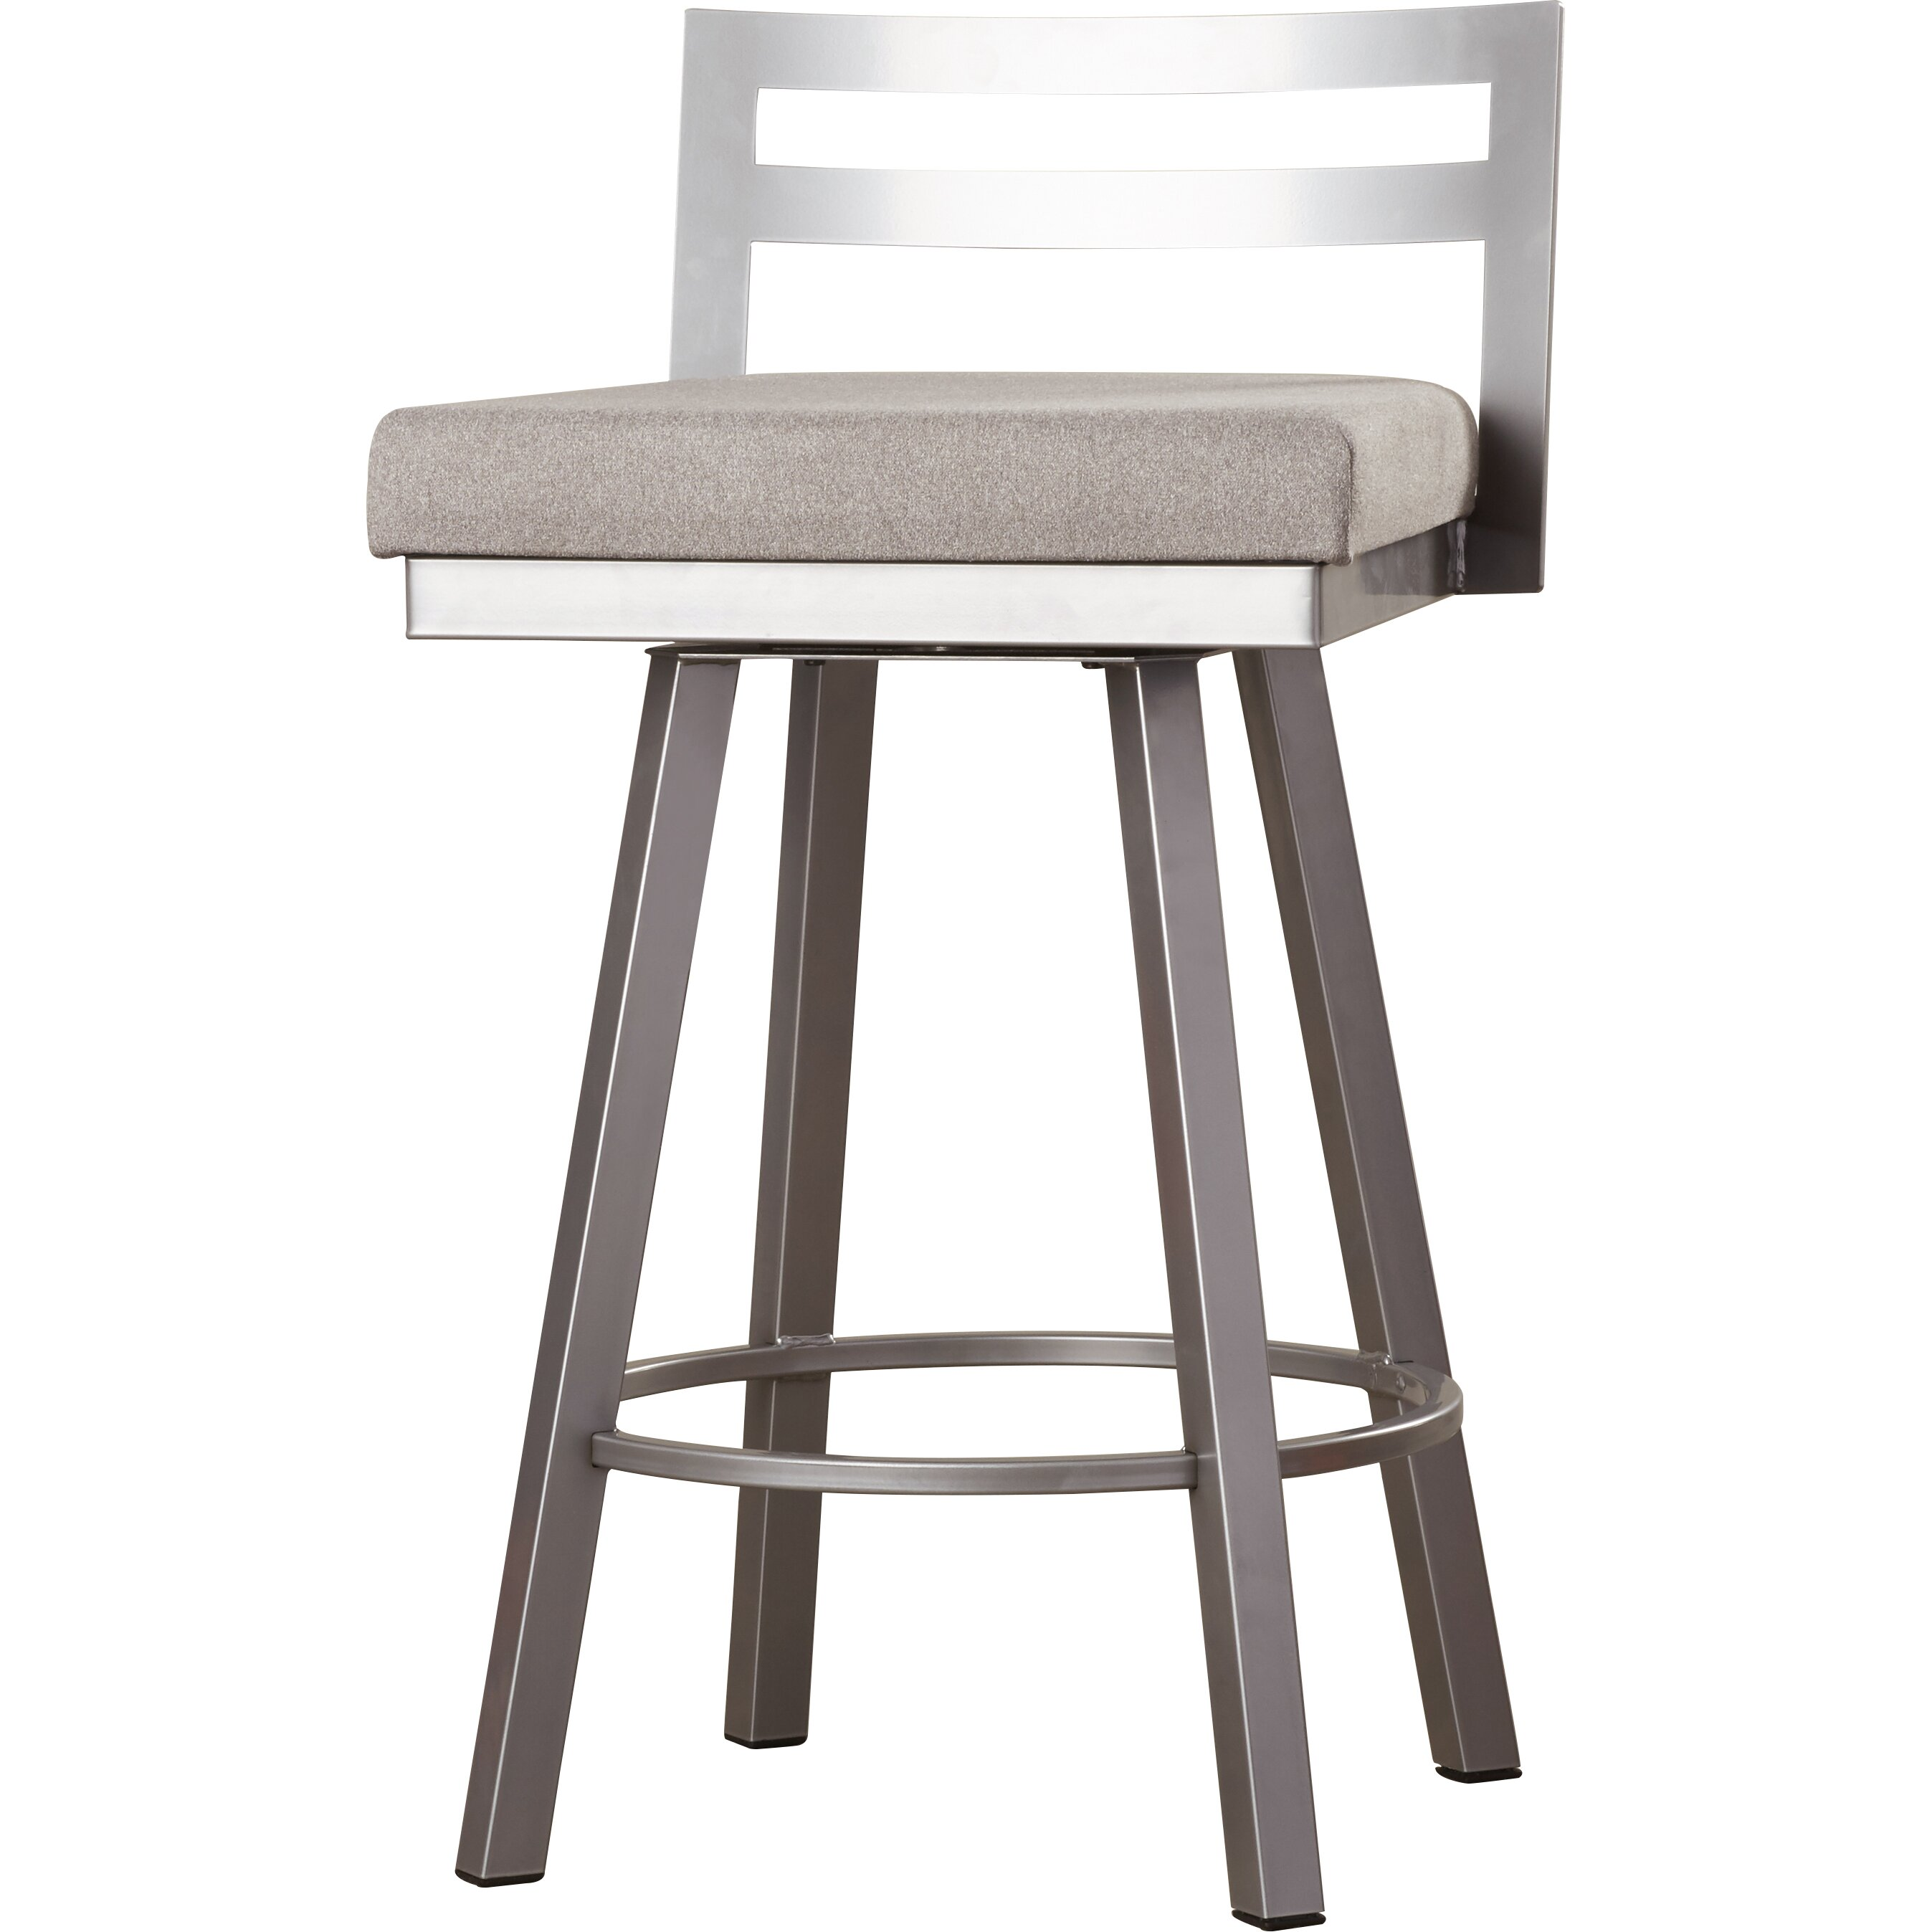 Brayden Studio Glassman 2675quot Swivel Bar Stool with  : Glassman 2675 Swivel Bar Stool with Cushion BRSD4374 from www.wayfair.com size 2695 x 2695 jpeg 461kB